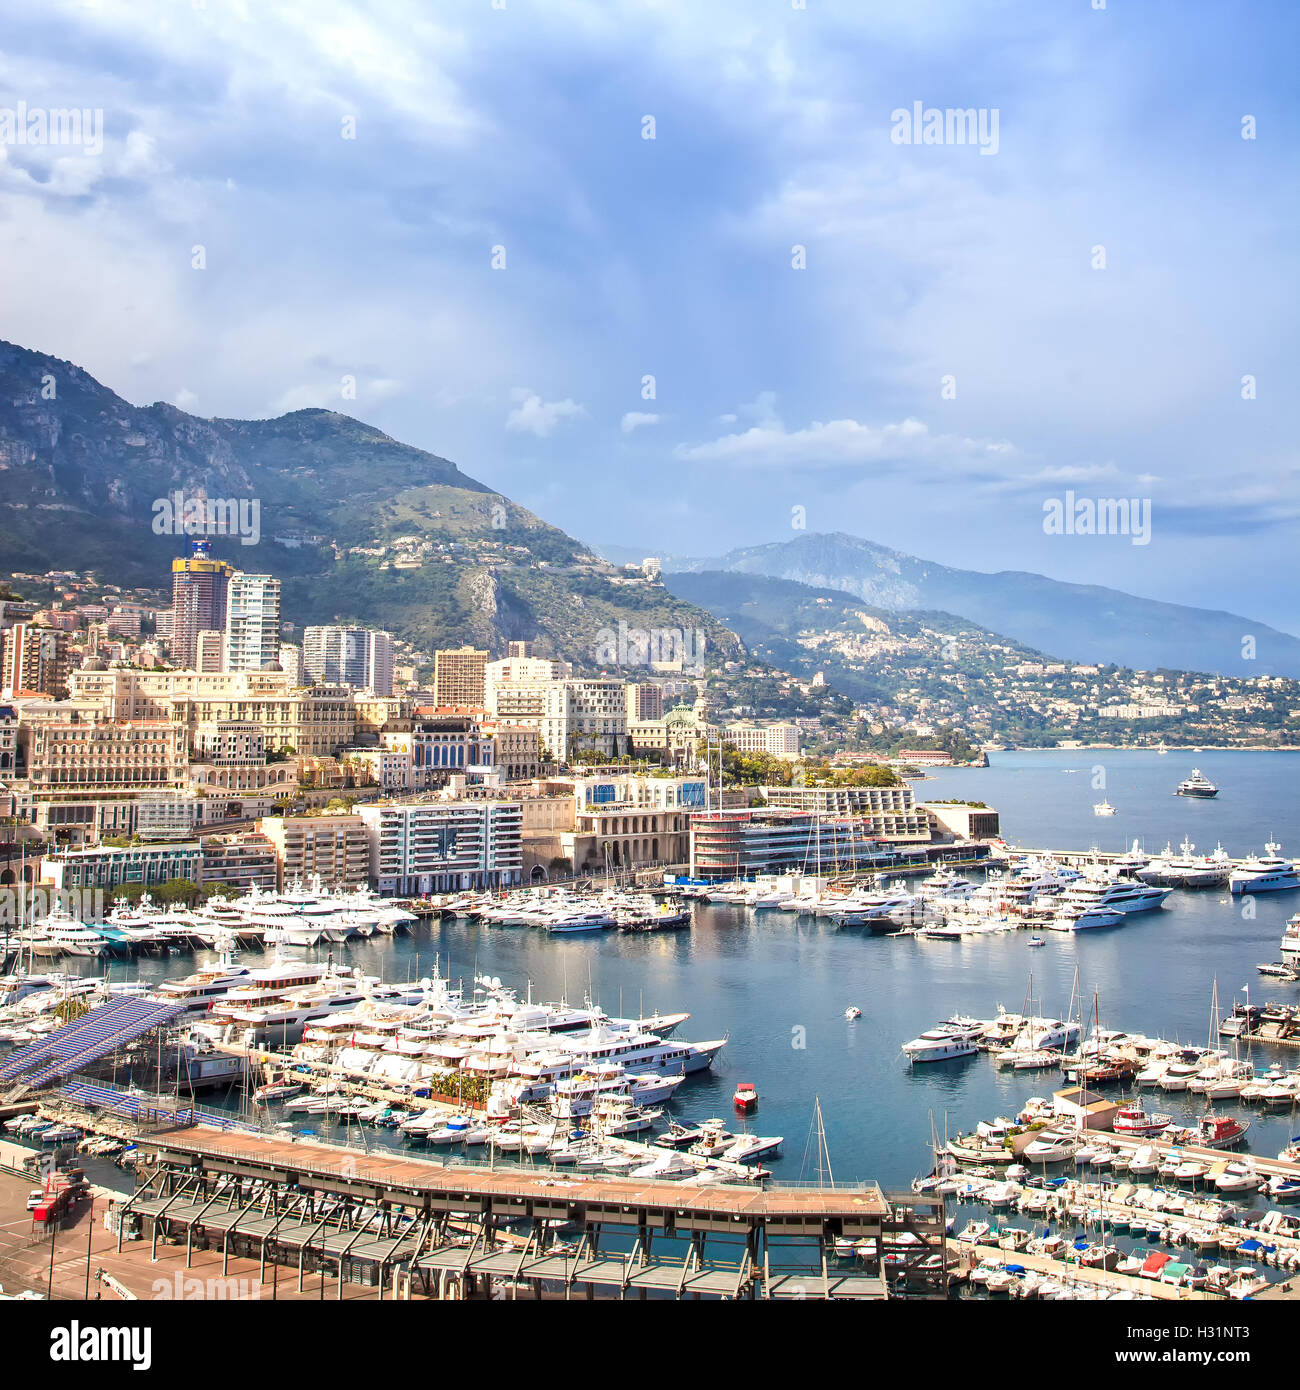 Monaco Montecarlo cityscape, principality aerial harbor view. Skyscrapers, mountains and marina. Azure coast. France, - Stock Image